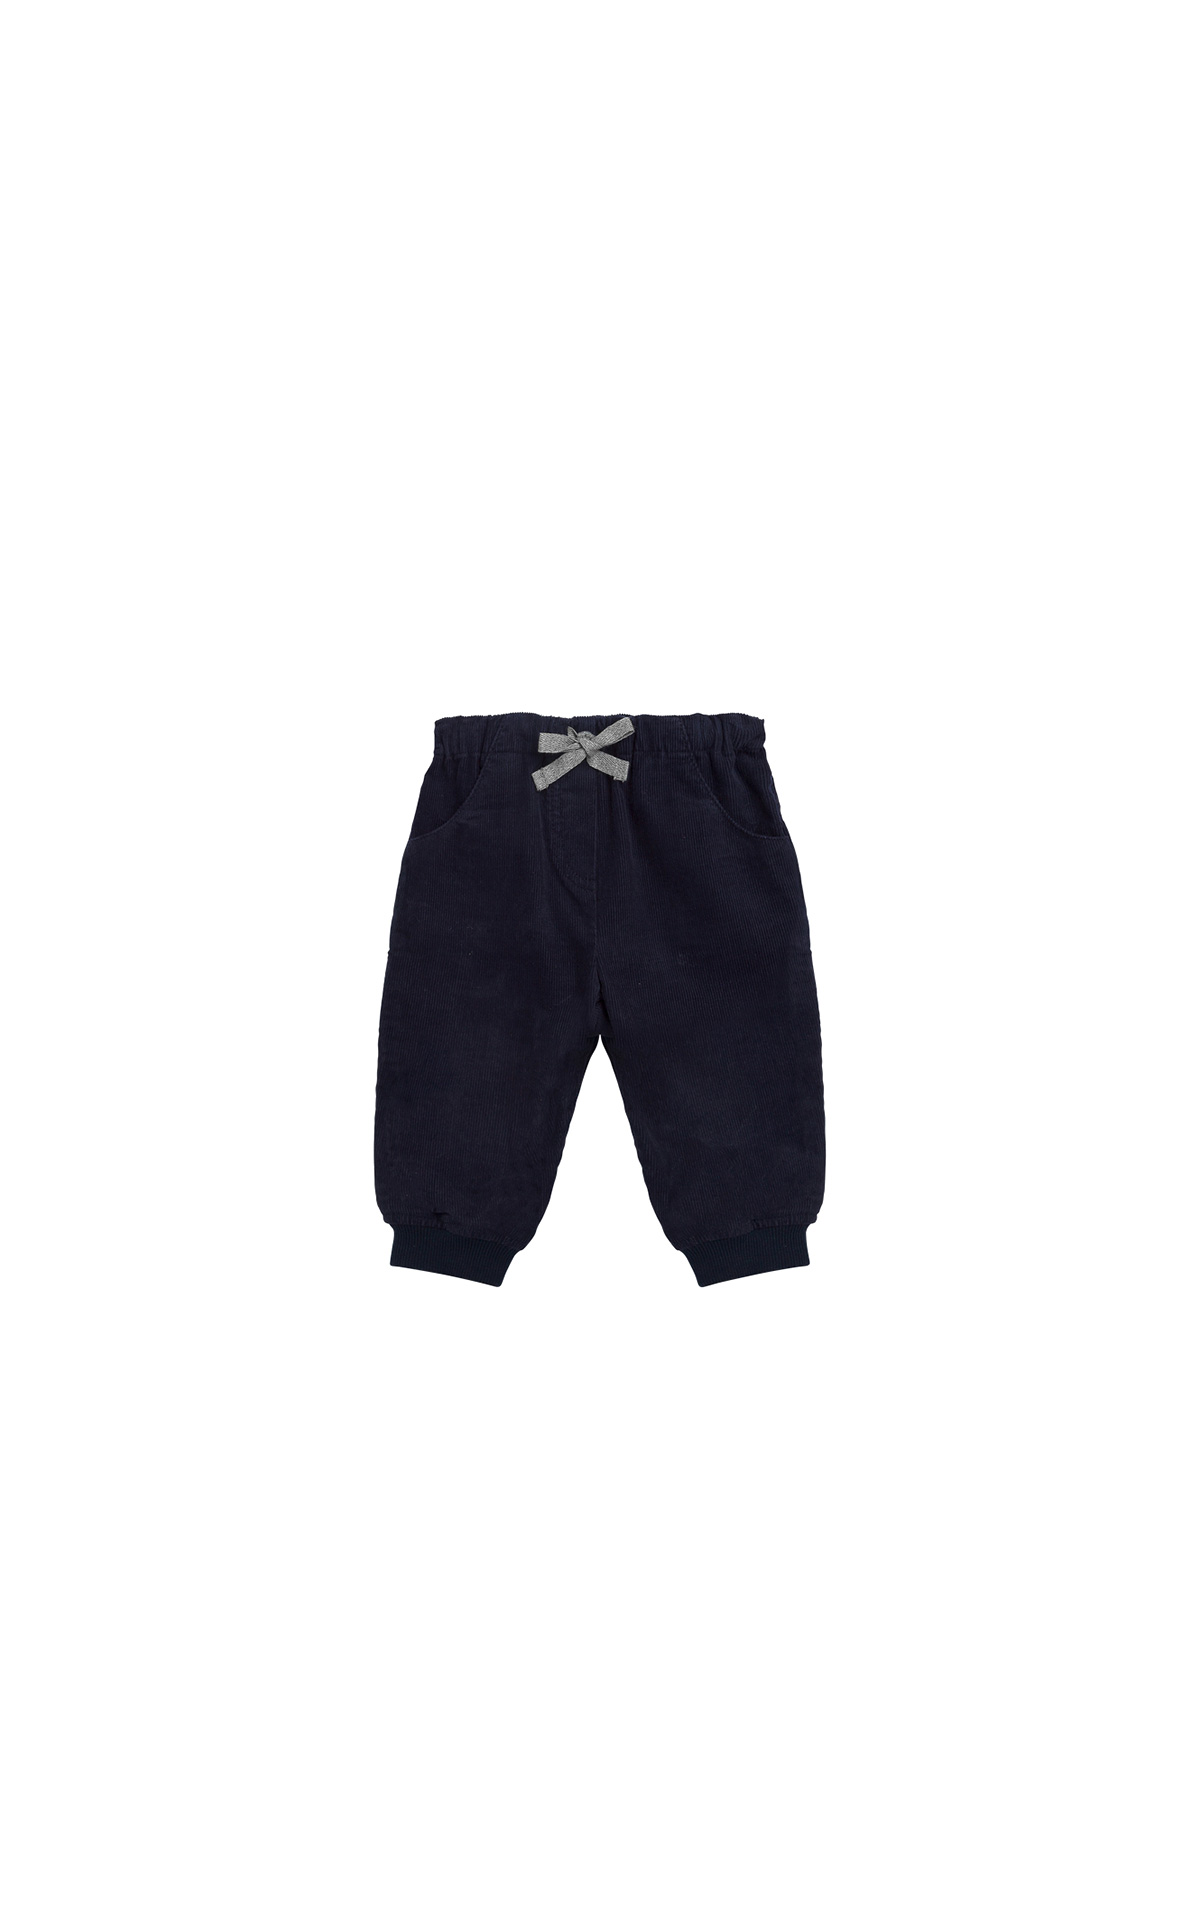 Bonpoint Baby's pants | La Vallée Village